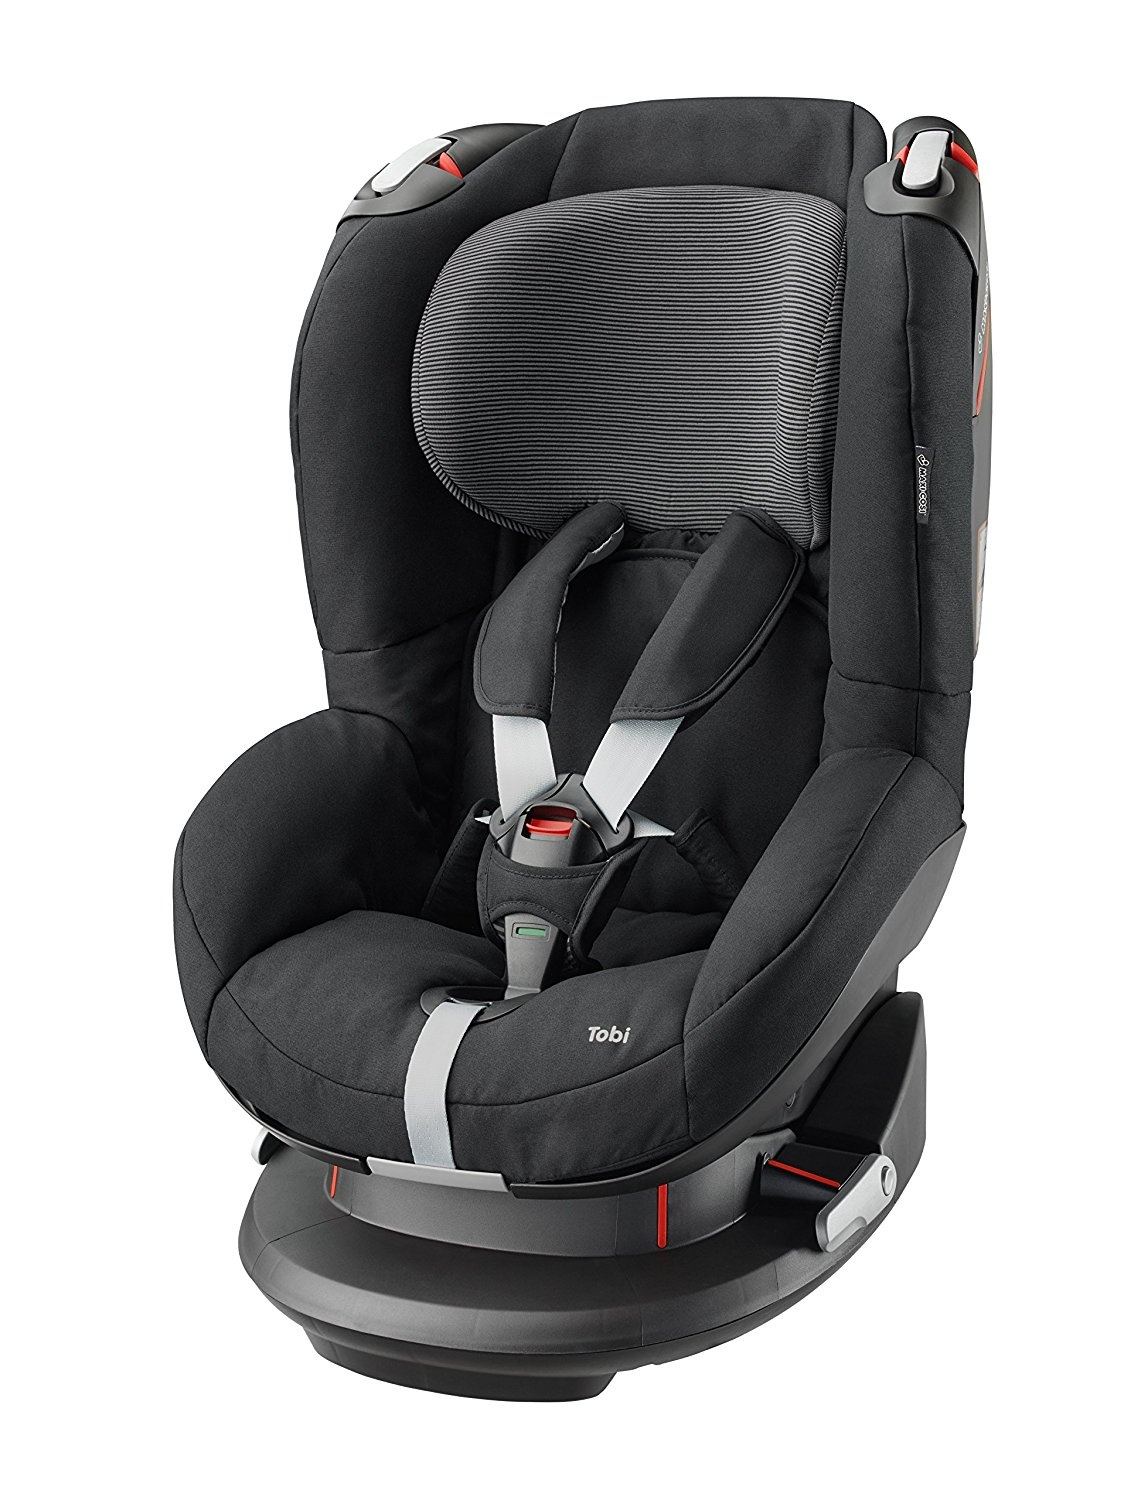 Maxi-Cosi Tobi   from £57.50